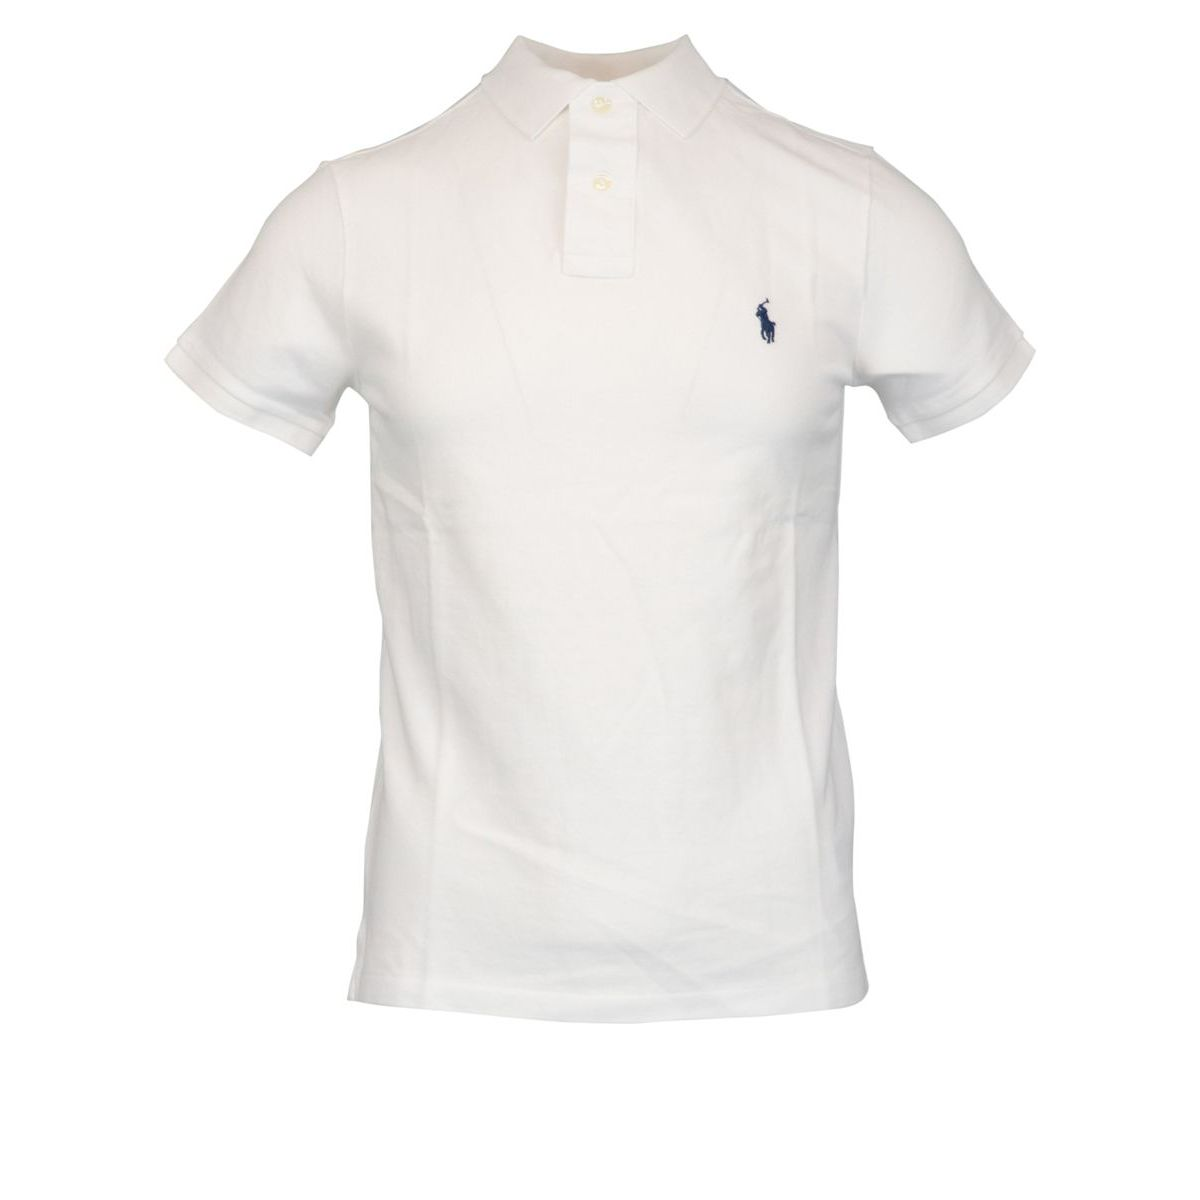 Cotton polo shirt with two buttons Custom Fit White Polo Ralph Lauren